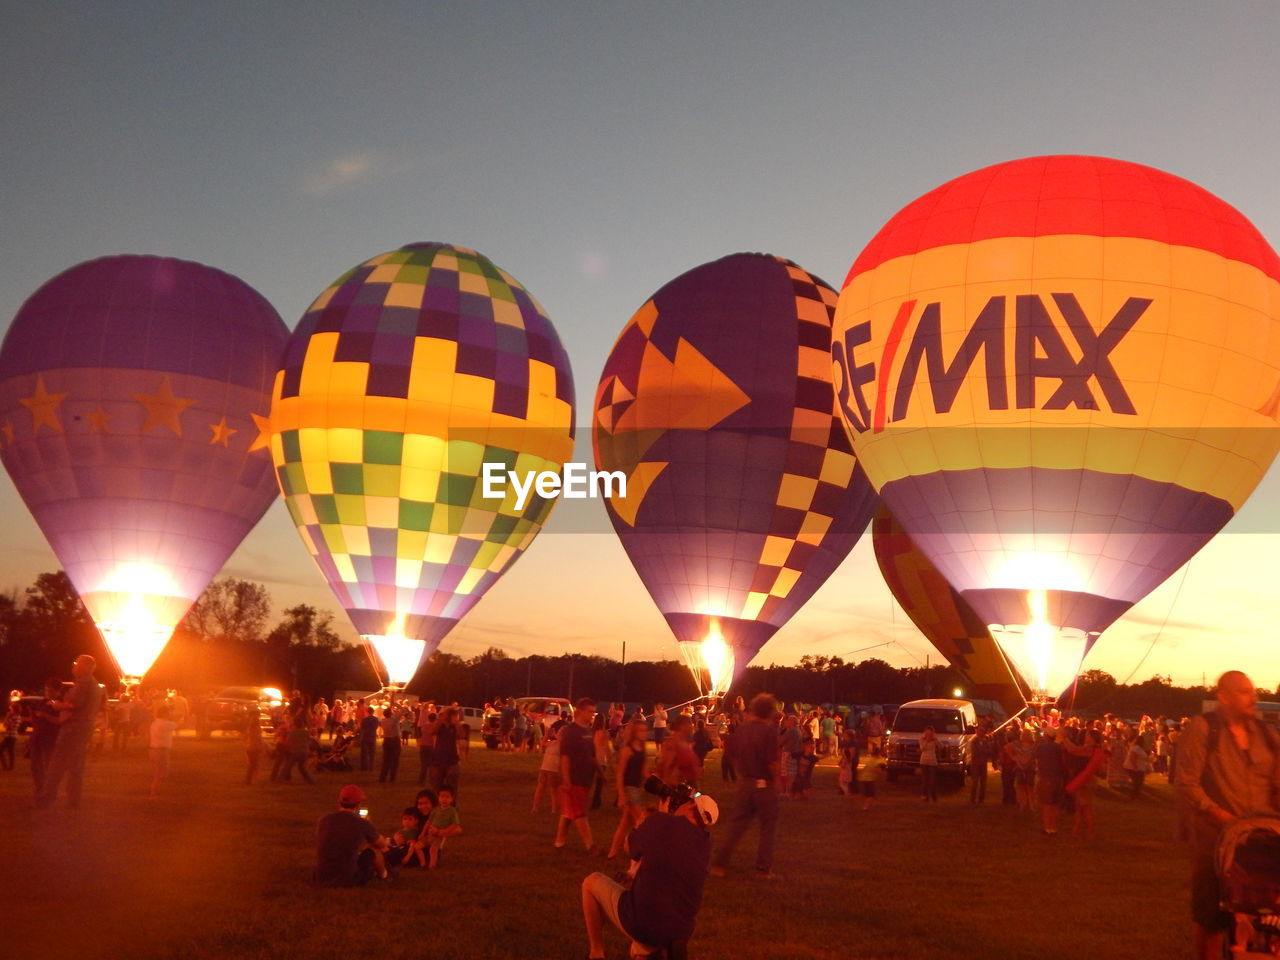 large group of people, celebration, illuminated, event, leisure activity, real people, ballooning festival, adventure, outdoors, enjoyment, traditional festival, crowd, fun, clear sky, night, hot air balloon, lifestyles, sky, men, women, people